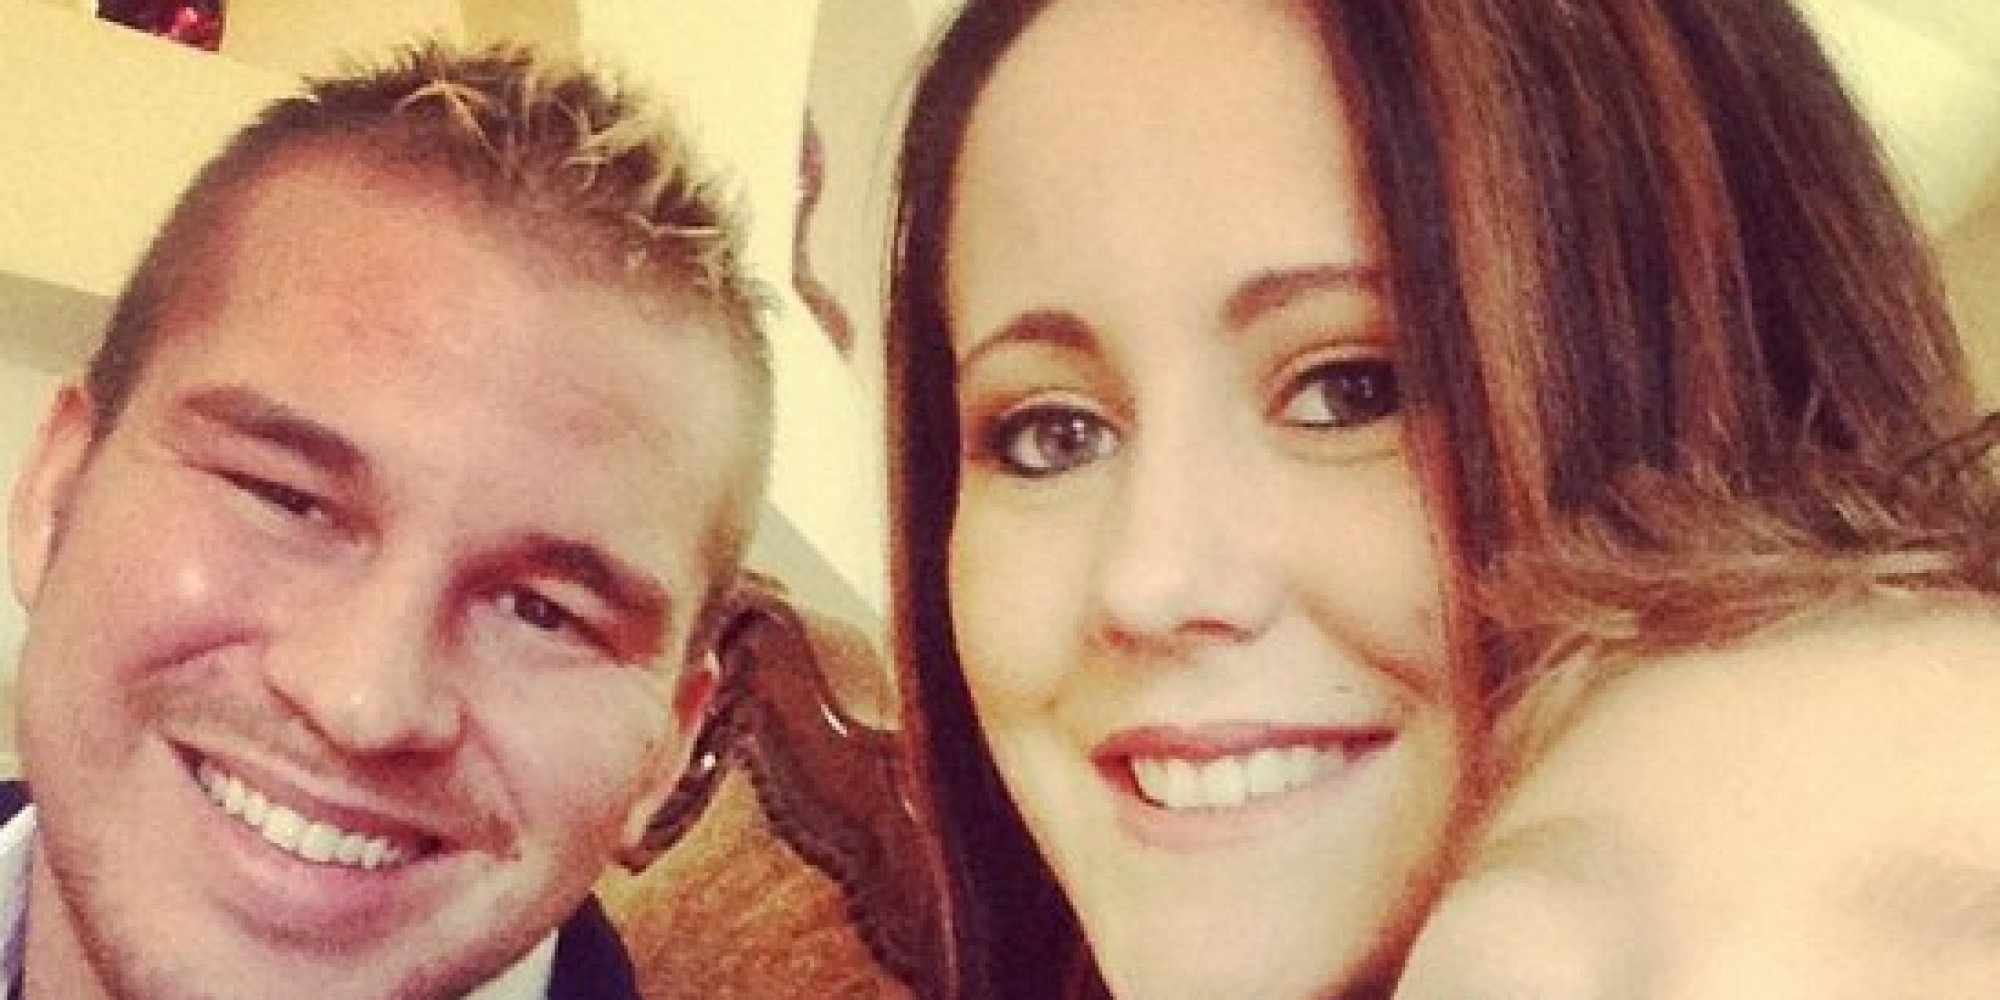 Jenelle Evans Pregnant With Second Child 'Teen Mom 2' Star Jene...